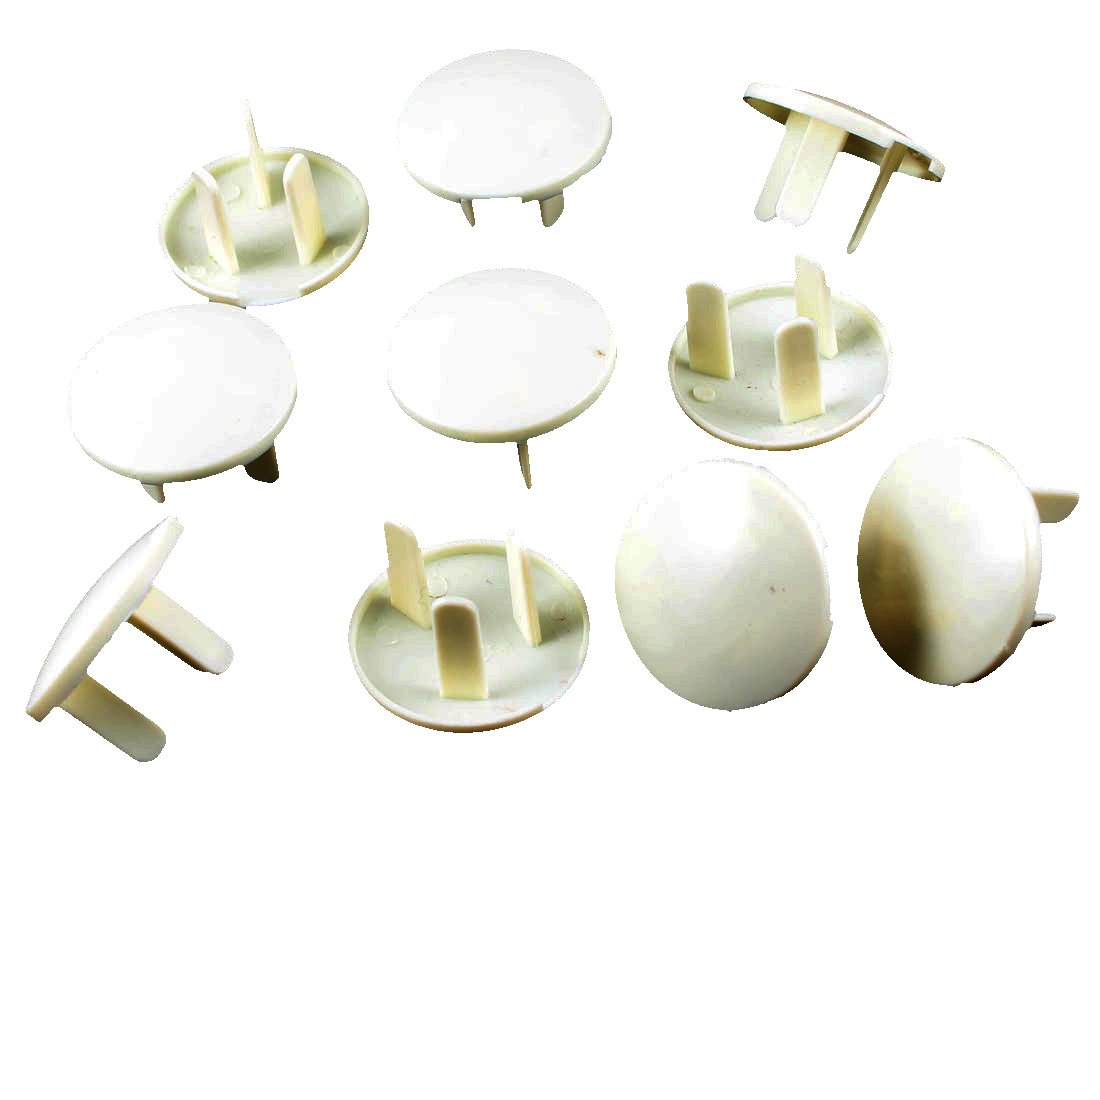 10 Pcs Beige Plastic Baby 3 Flat Pin Electrical Safety Security Socket Cover